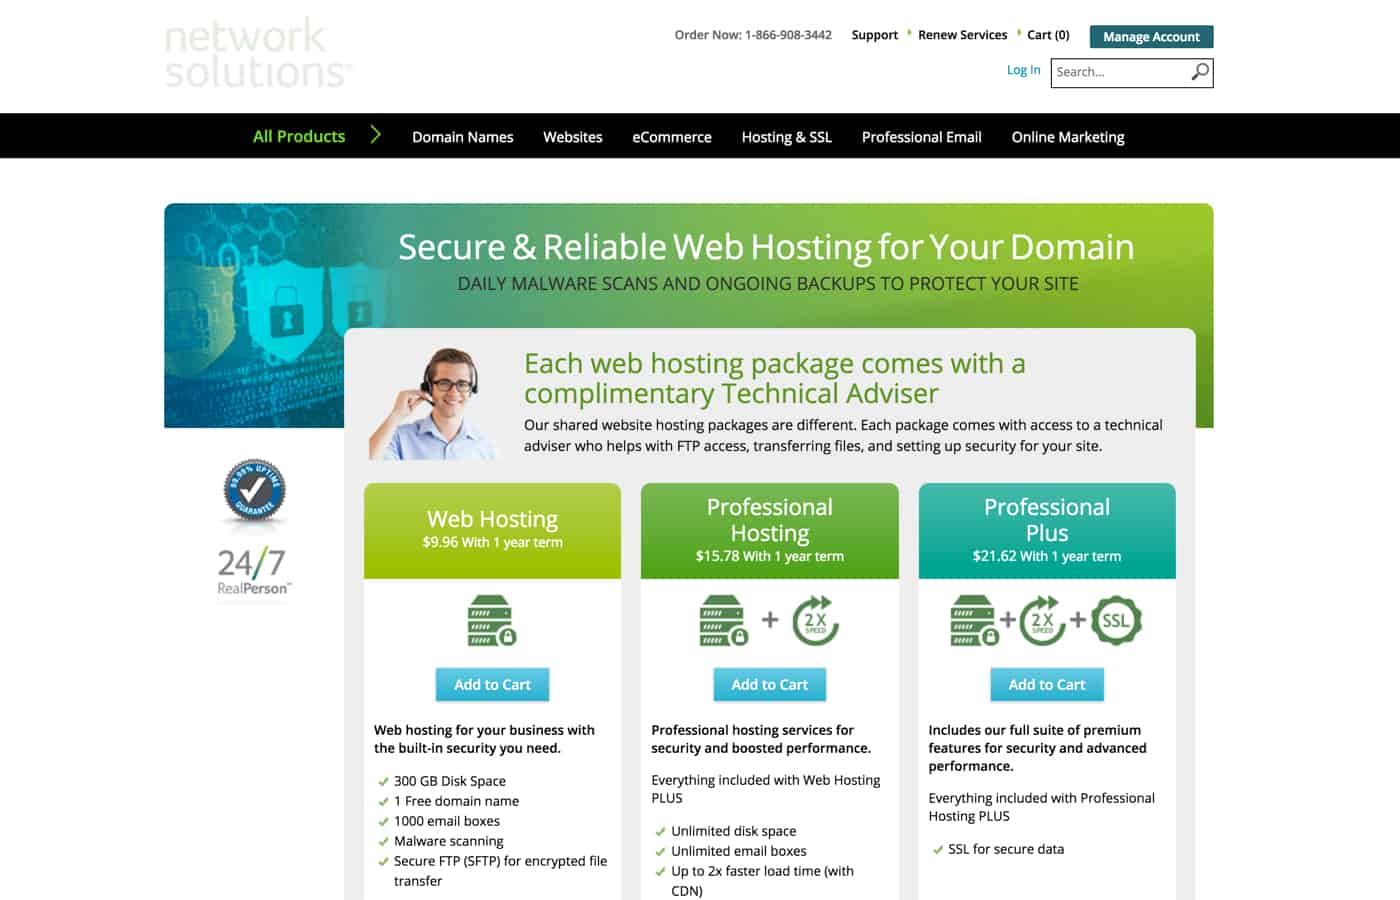 Network Solutions review